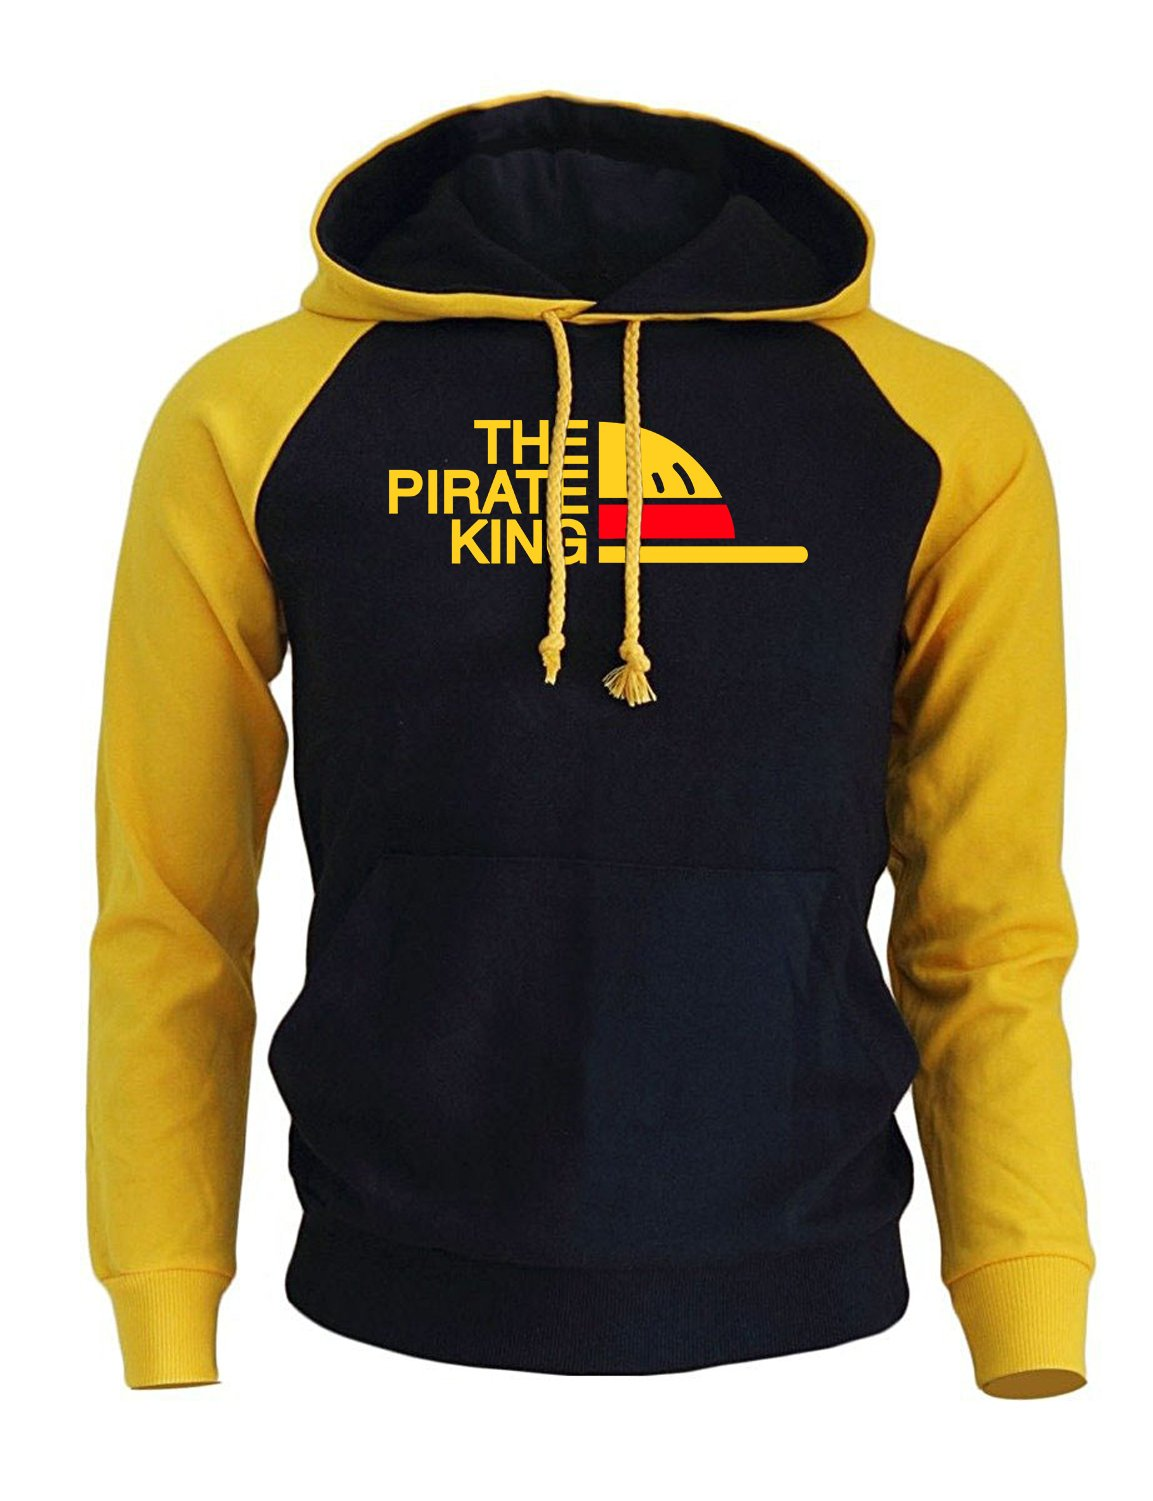 THE PIRATE KING Streetwear Hoodies For Men 2018 Autumn Winter Fleece Sweatshirtdresslliy-dresslliy